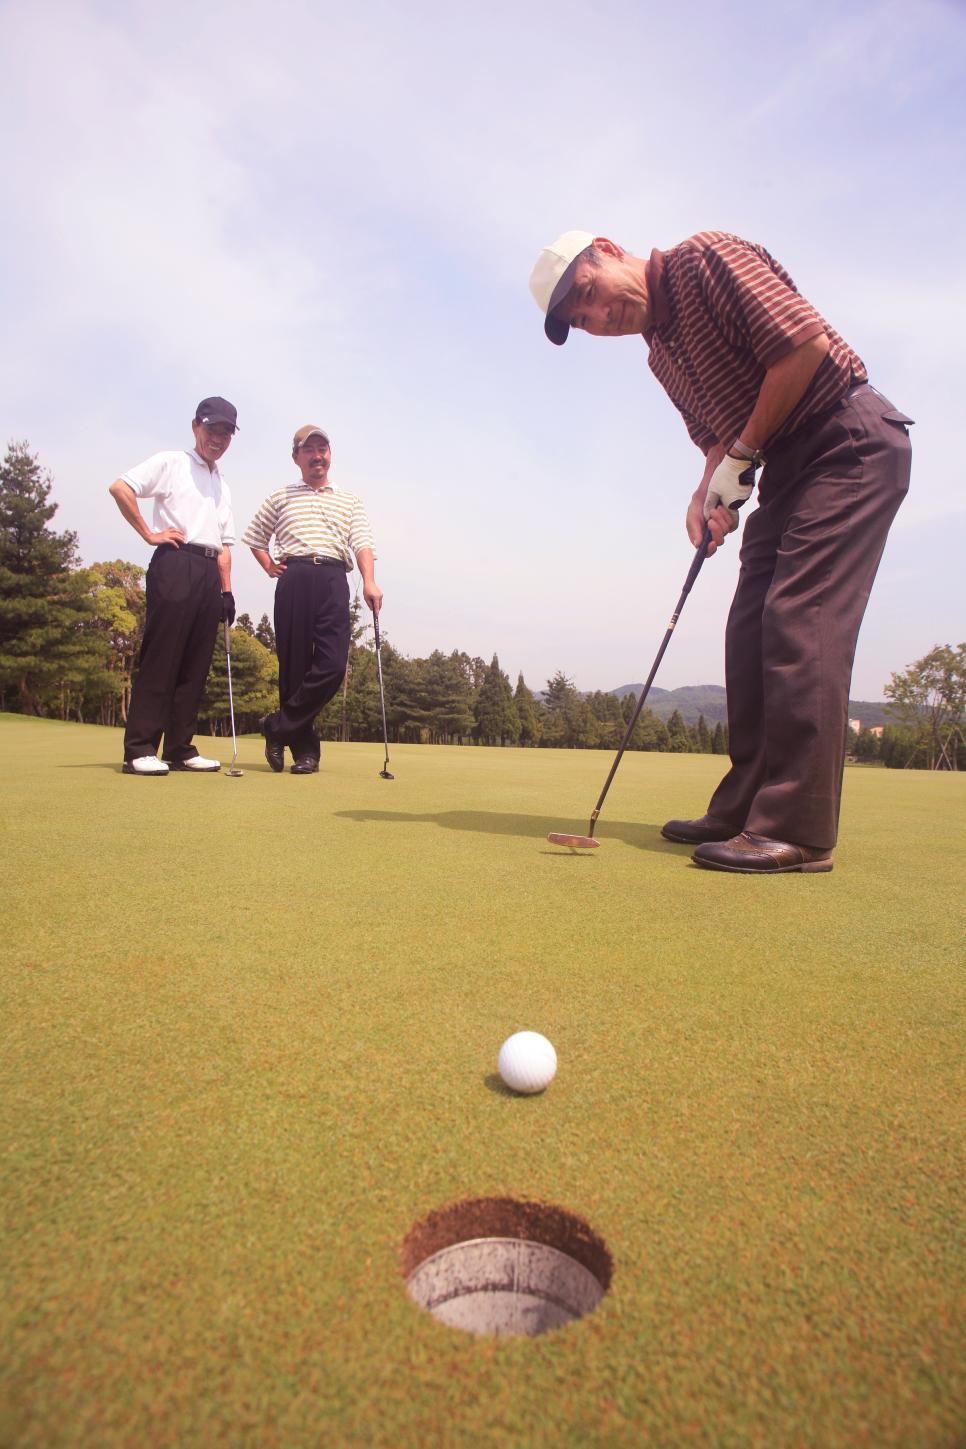 Three mature men playing golf (focus on hole in foreground)